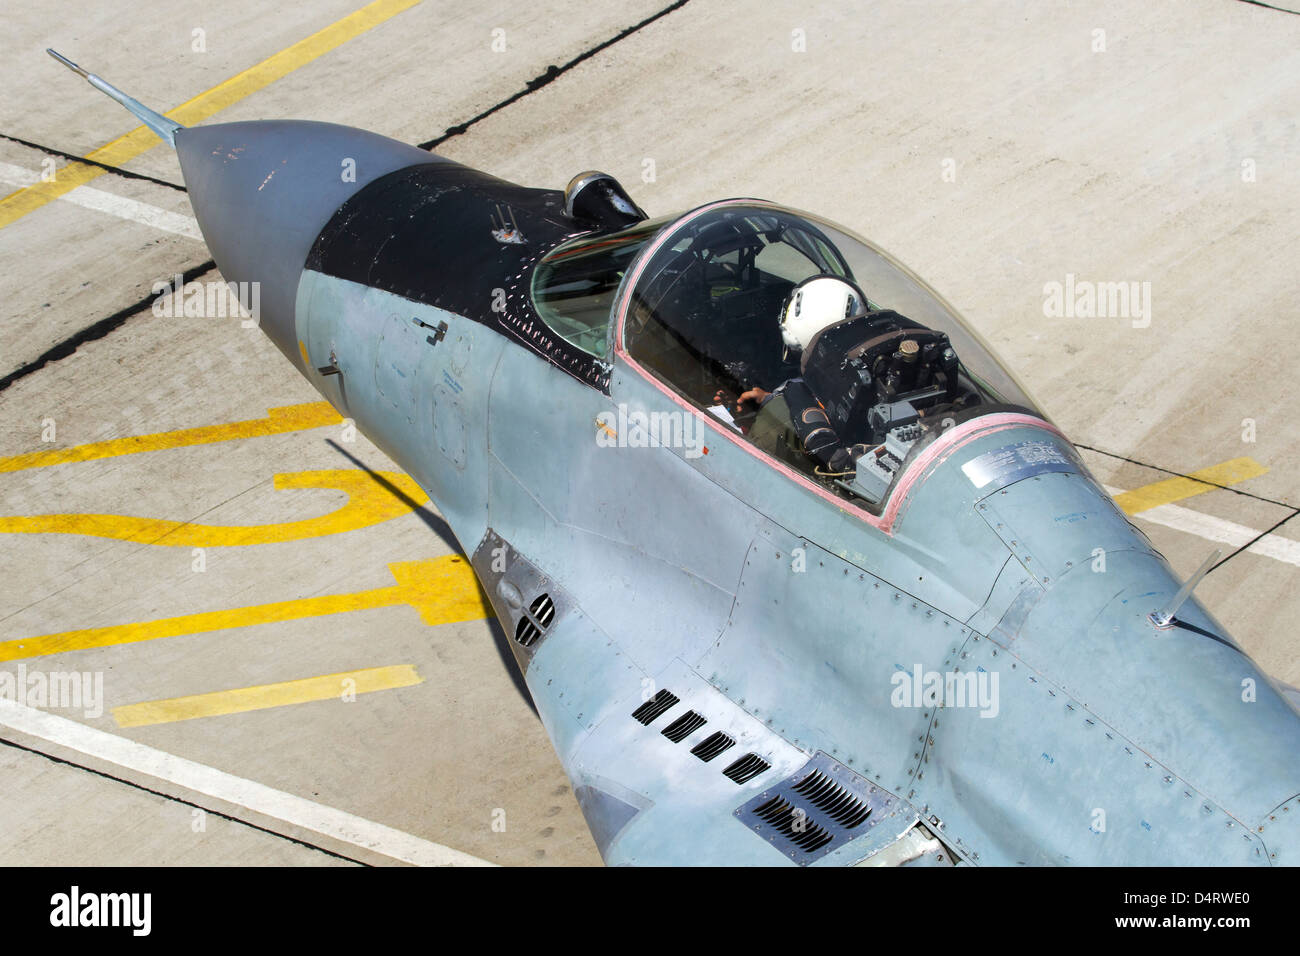 VVS Air Force Videos - Page 4 Top-view-of-the-cockpit-on-a-bulgarian-air-force-mig-29-jet-fighter-D4RWE0